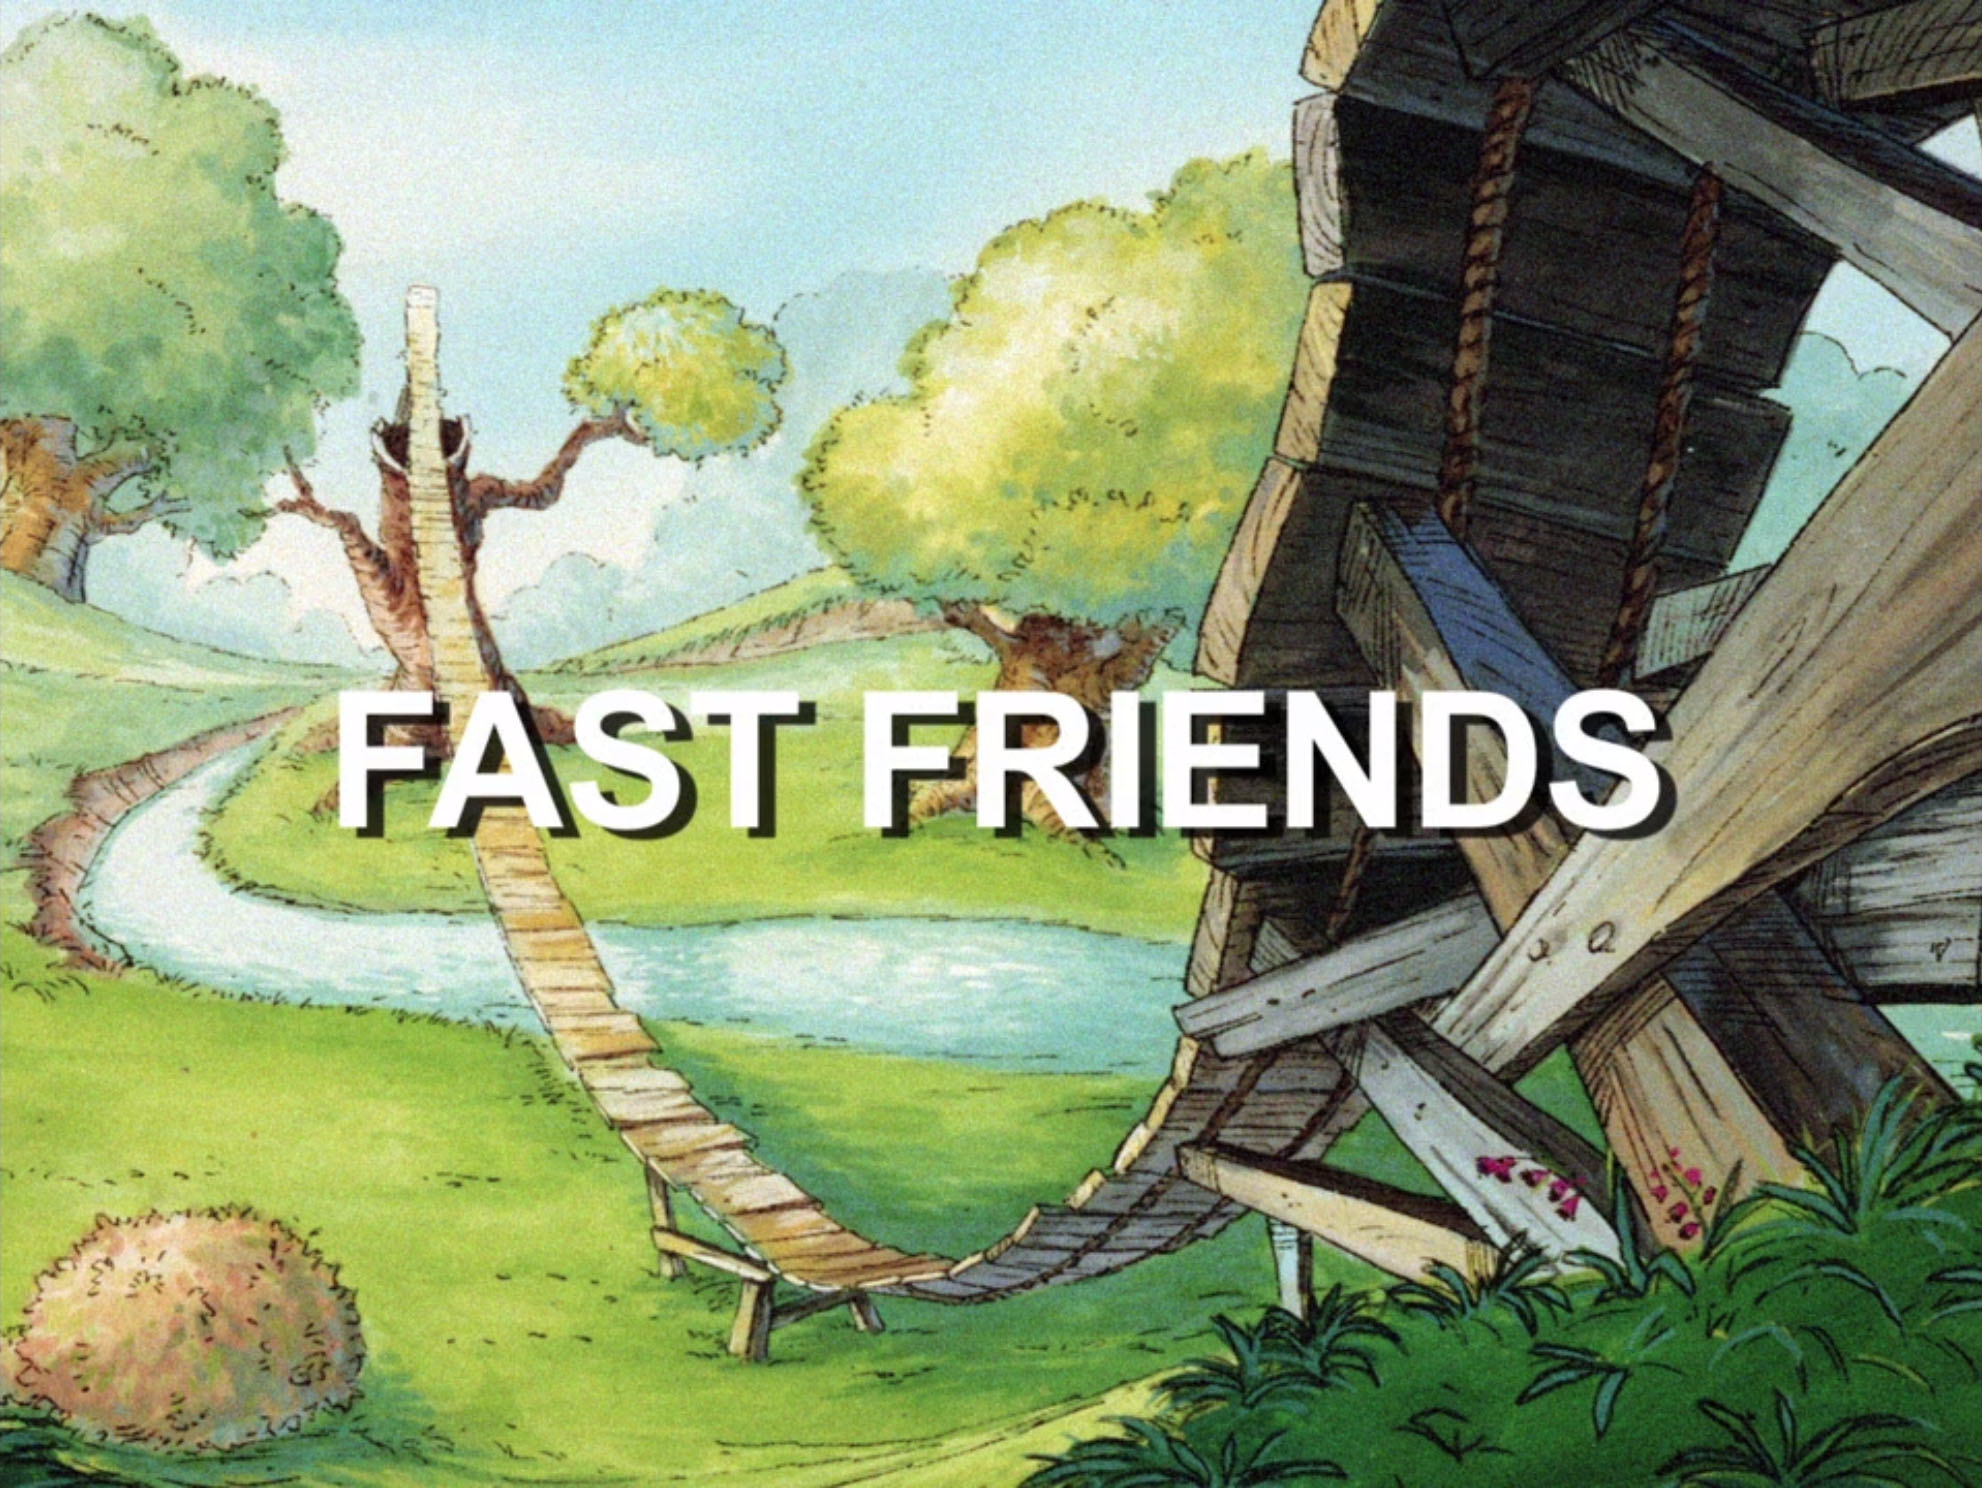 File:Fastfriends.jpg